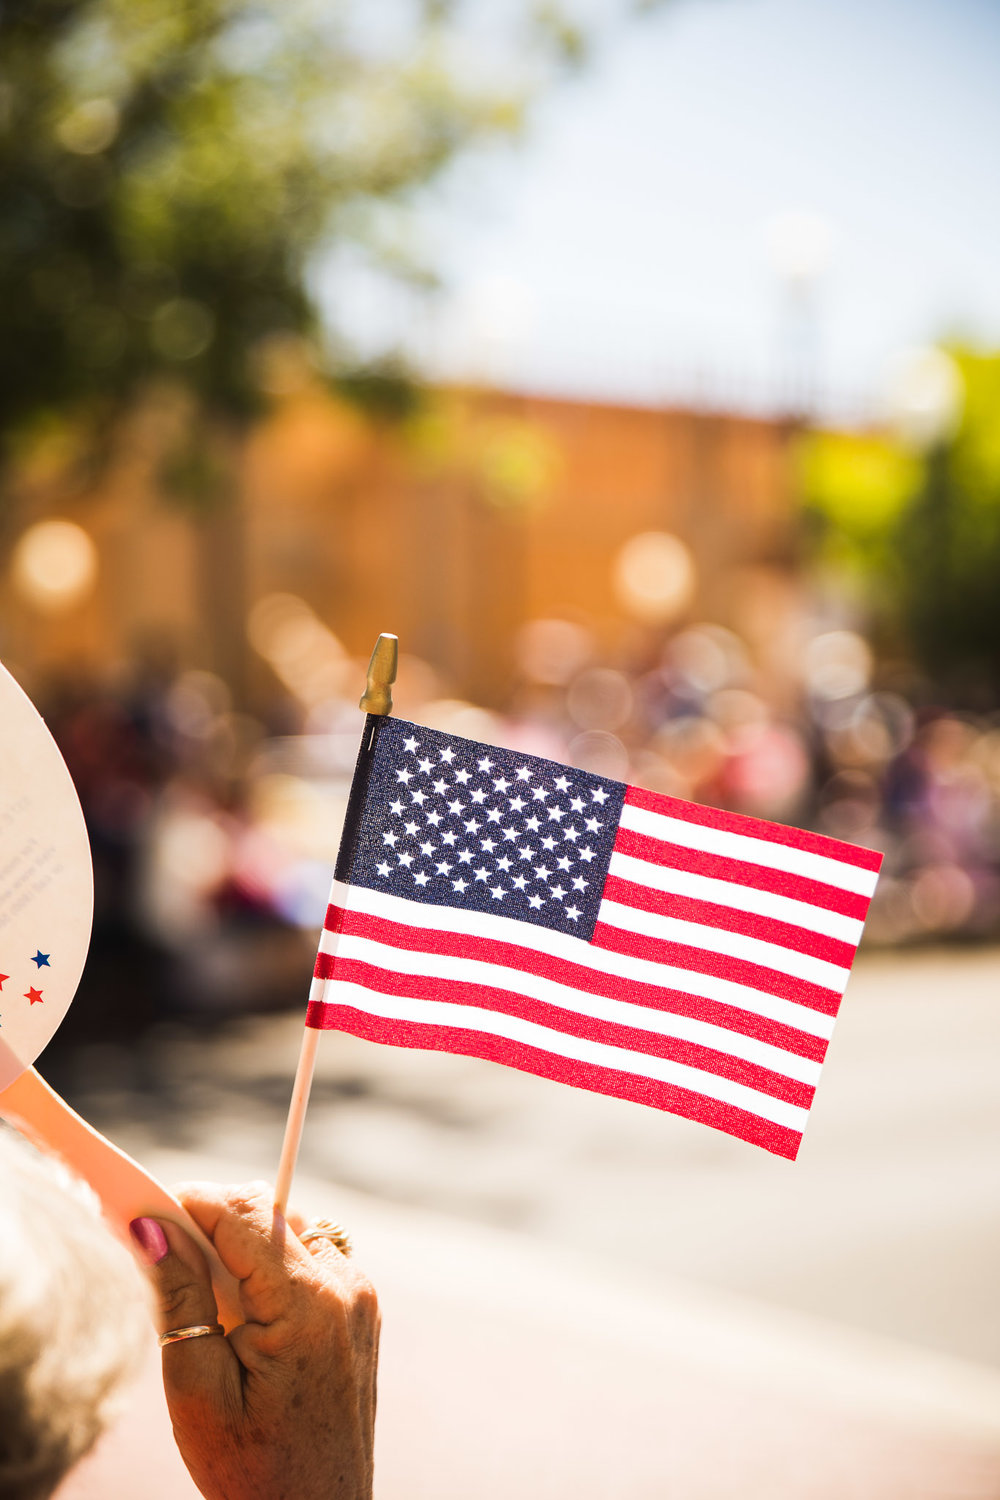 Archer_Inspired_Photography_Morgan_Hill_California_4th_of_july_parade-111.jpg